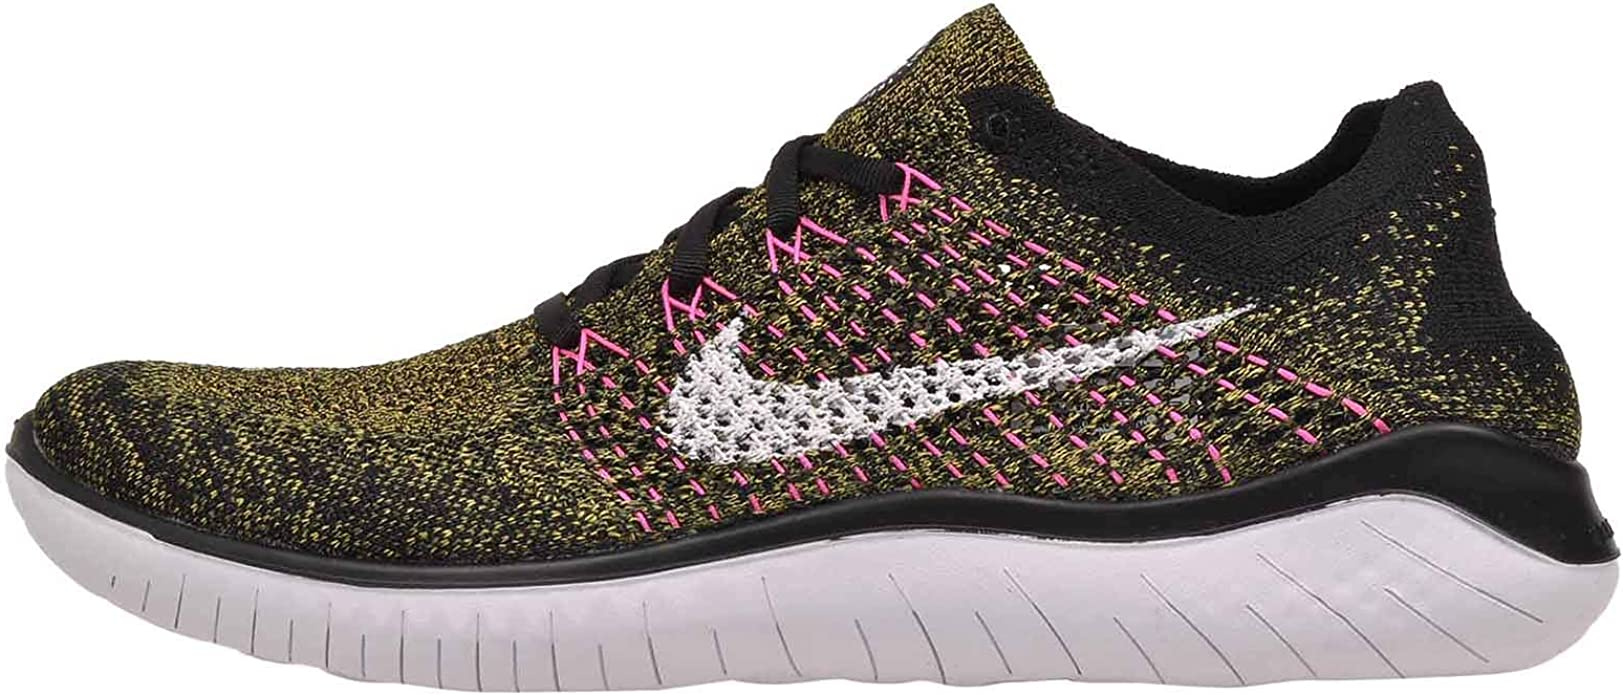 Nike Mens Free RN Flyknit Running Shoe: Amazon.es: Zapatos y complementos